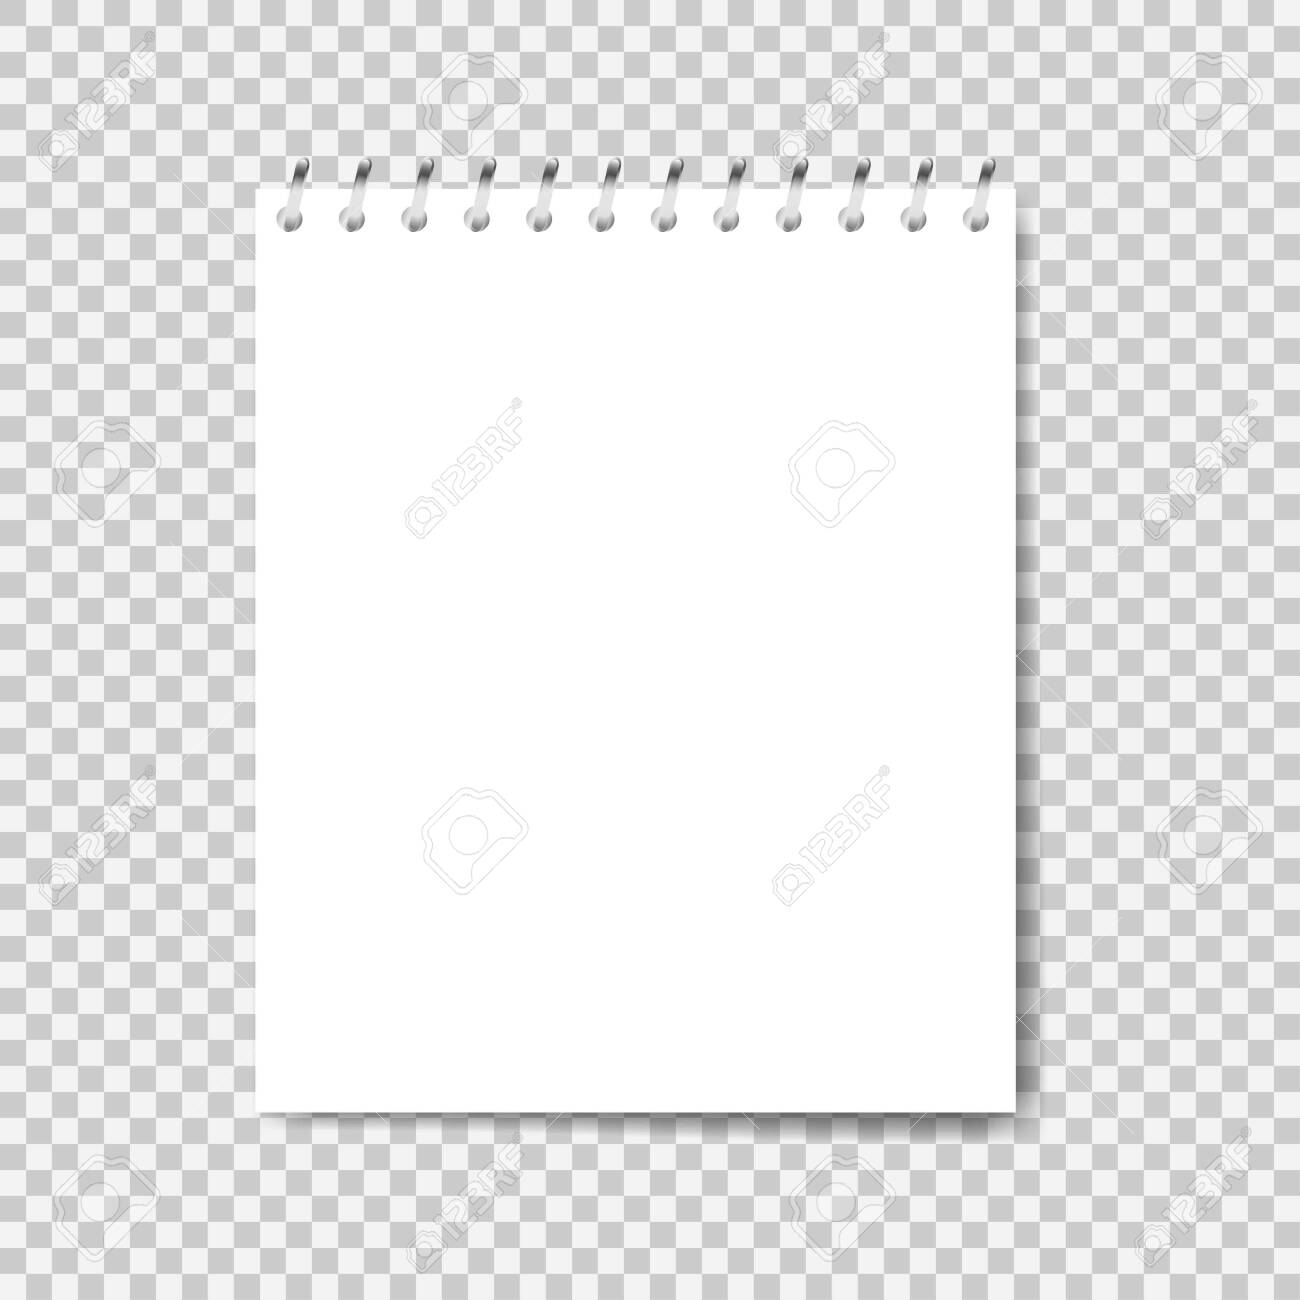 Notebook mockup. Note with spiral. Notebook realistic style. Notepad empty paper. Vector illustration - 146179344